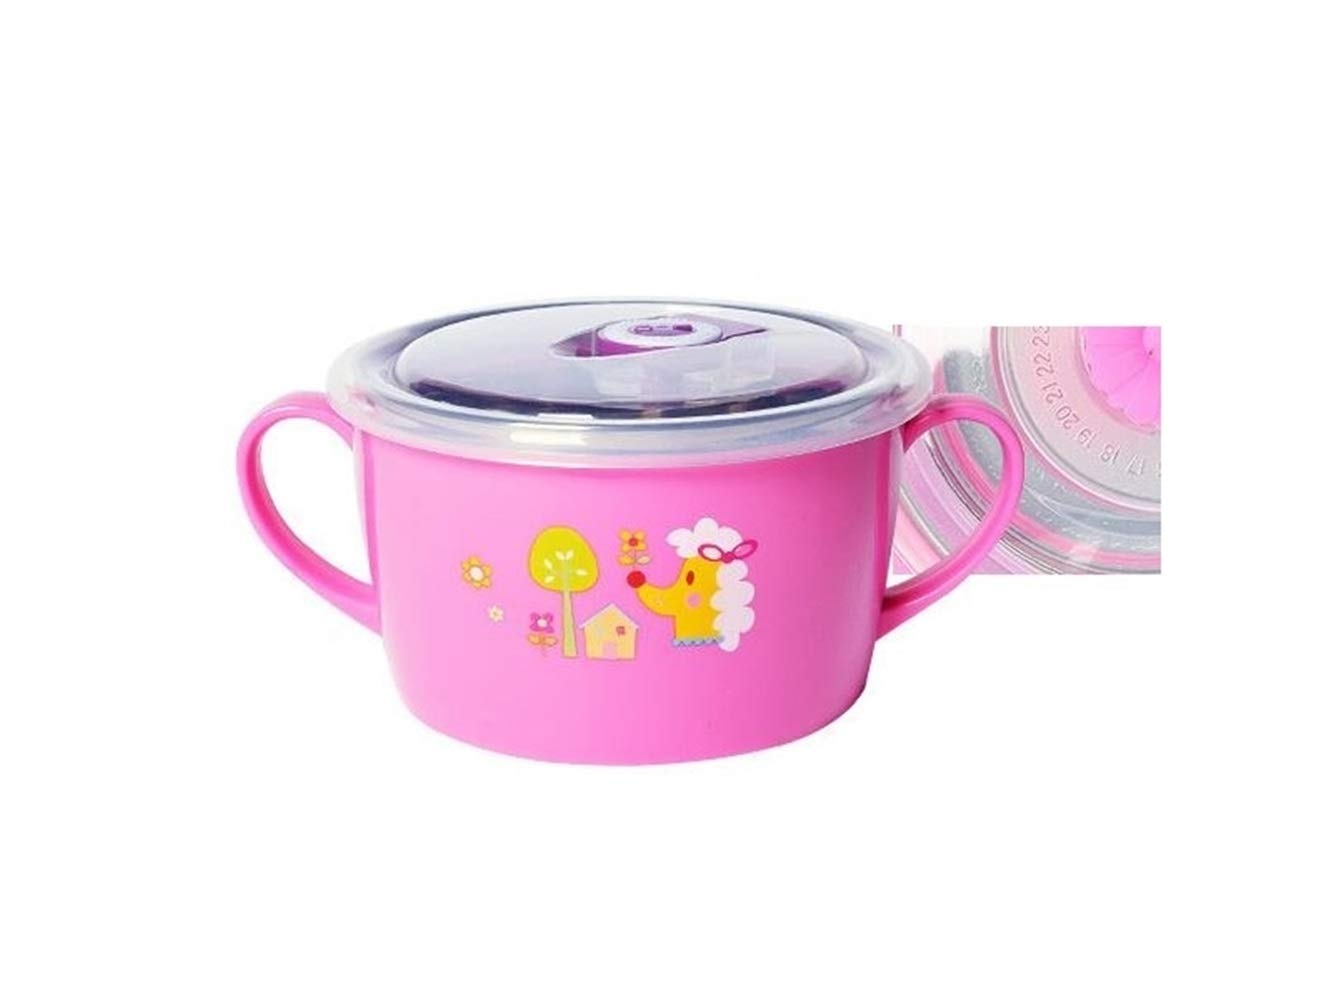 Yuchoi Contemporary Animal Pattern Baby Feeding Bowl Anti-Scald Stainless Steel Children Dish Insulation Bowl with Lid and Double Handles for Kids Students(Pink)